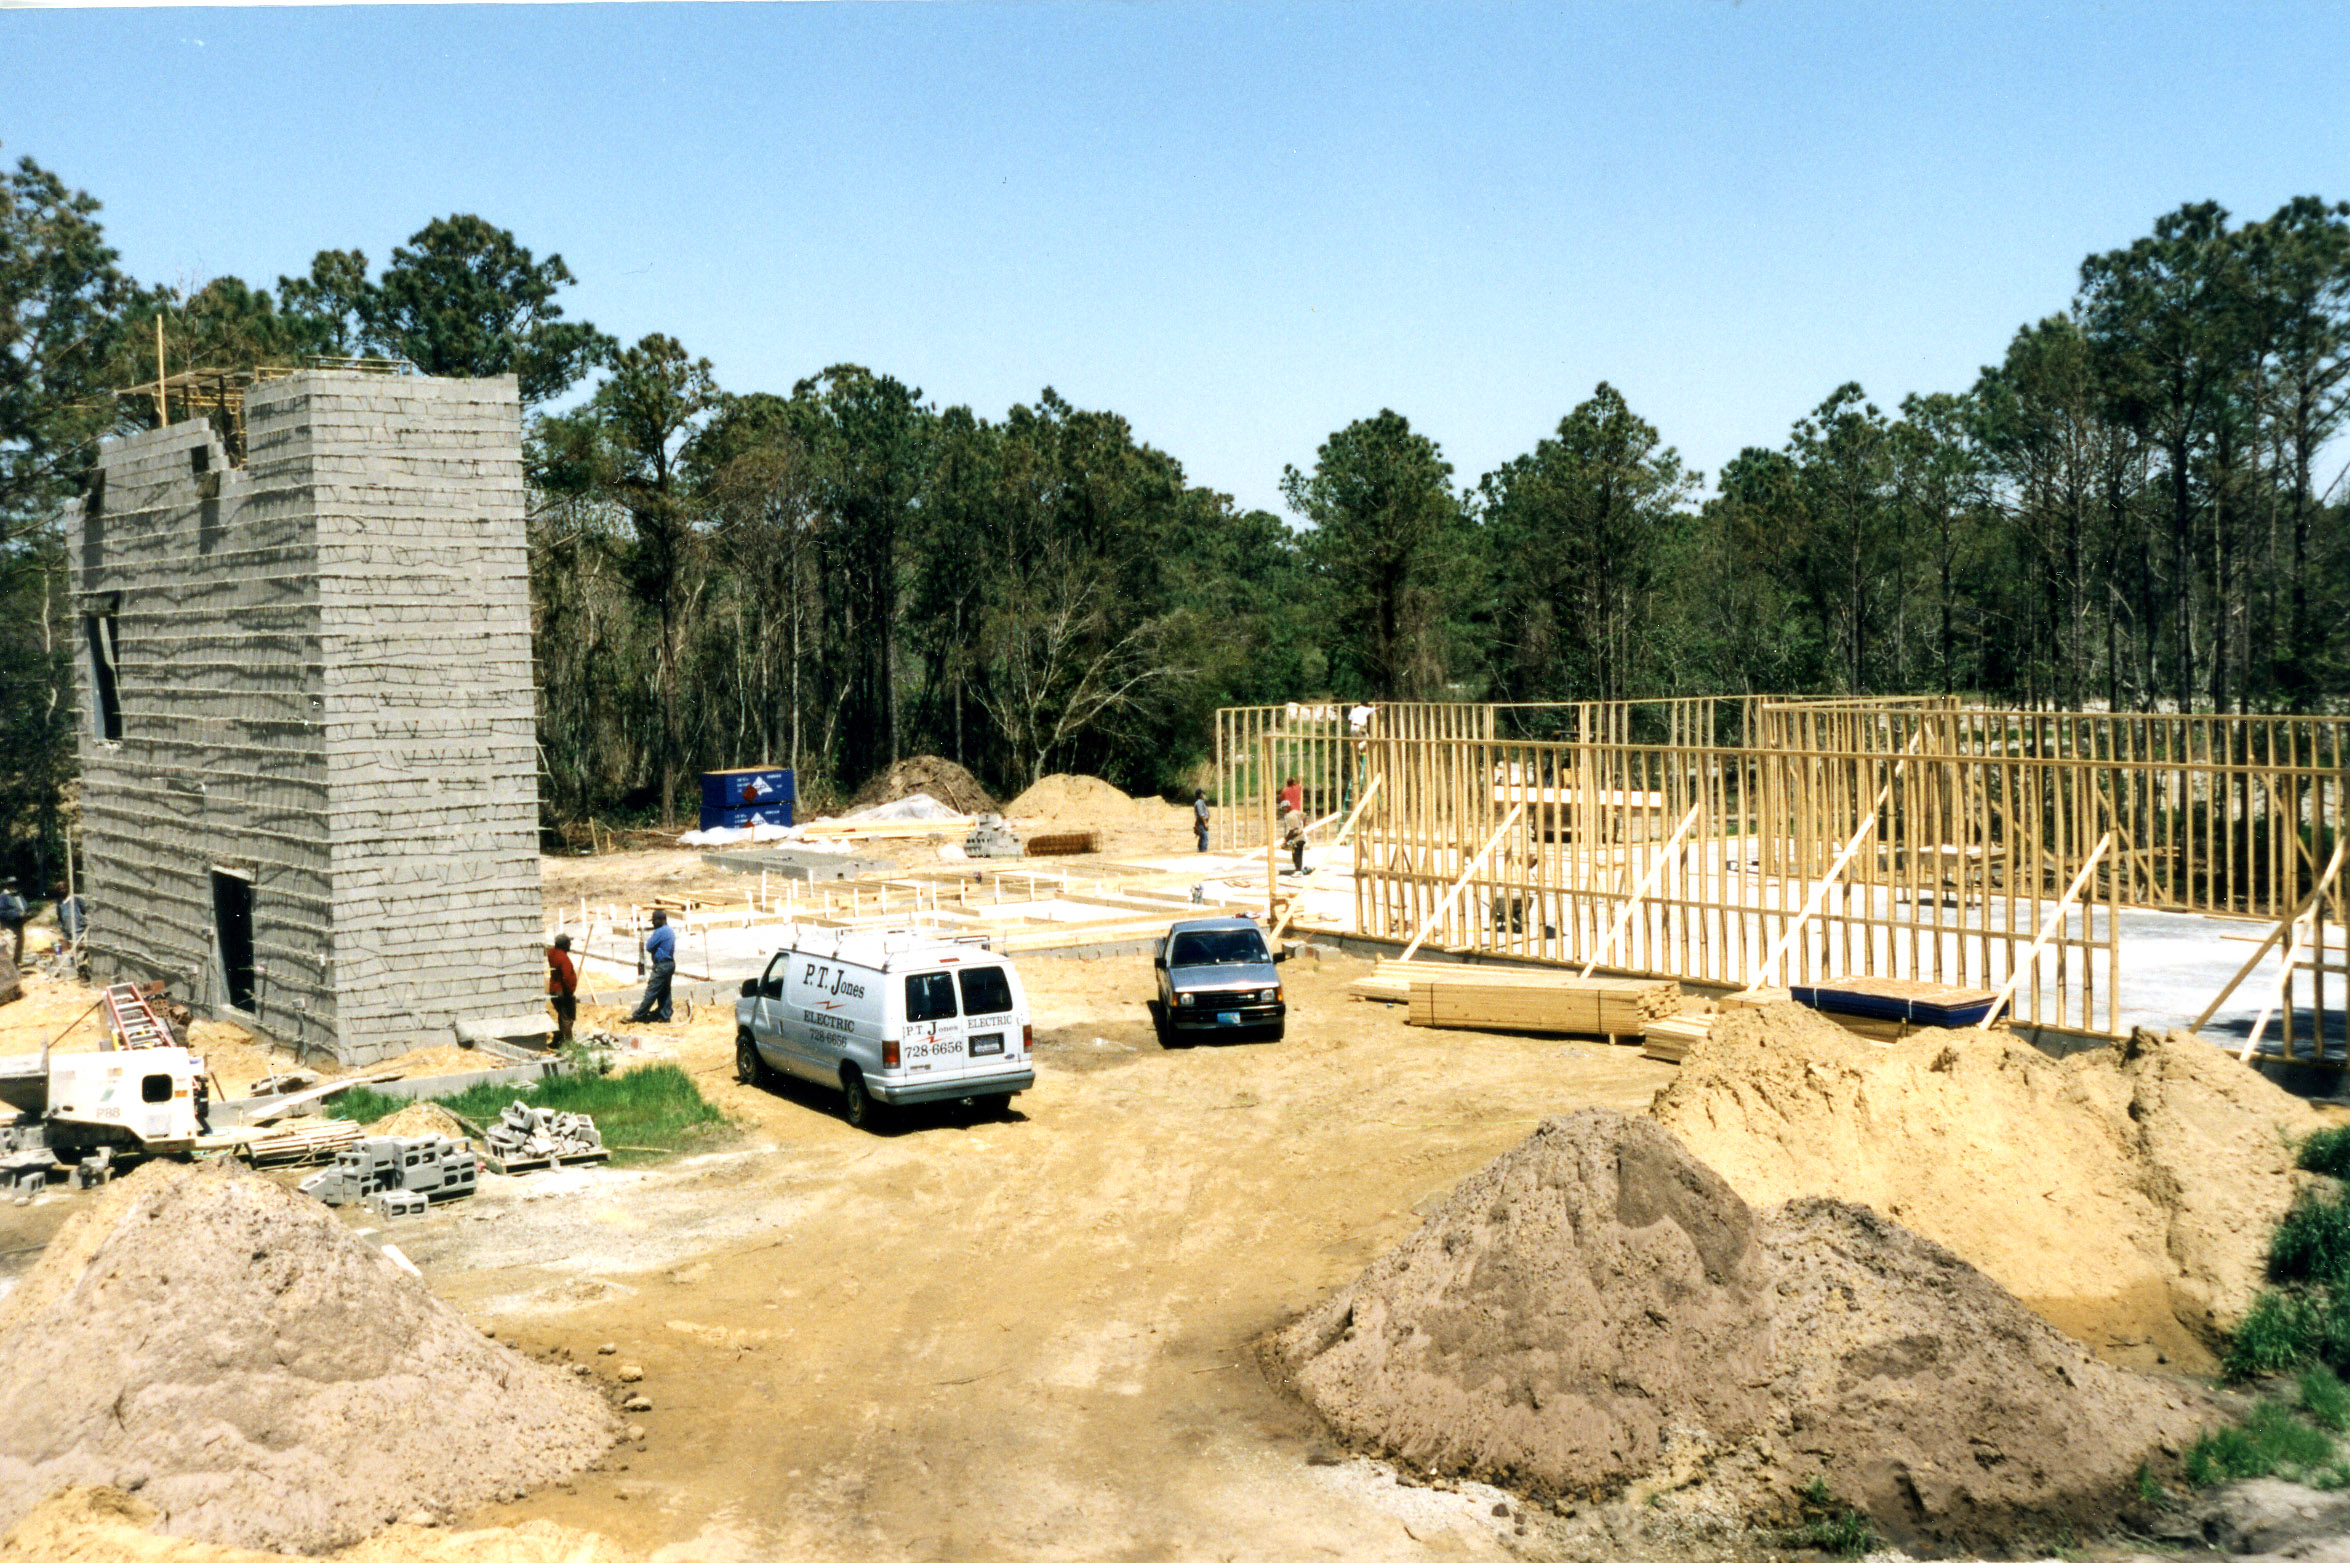 20th-museum construction #6 4 13 99.jpg